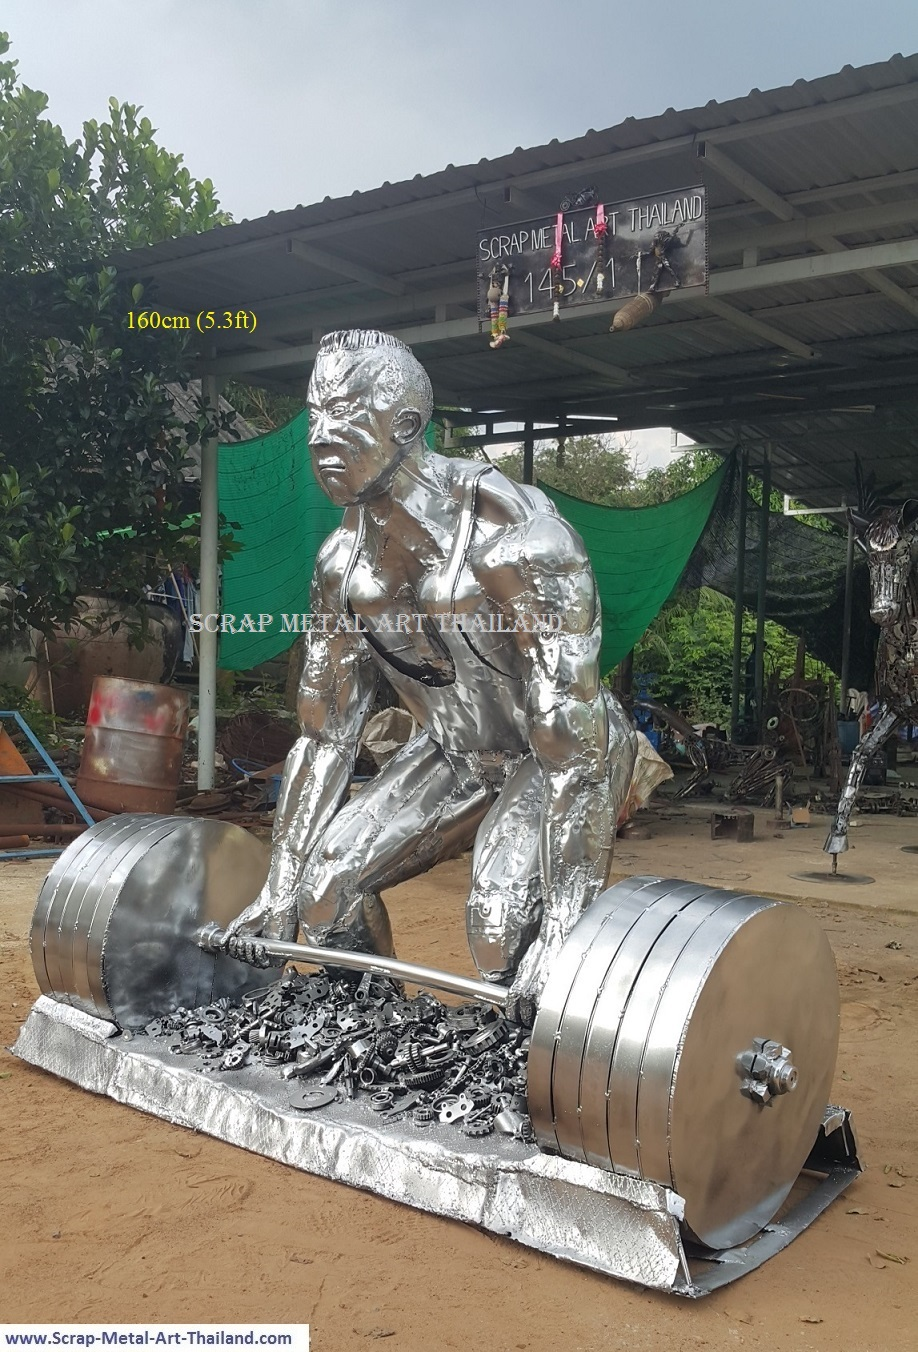 Deadlifter statue, Weightlifter sculpture, life size scrap metal art from Thailand